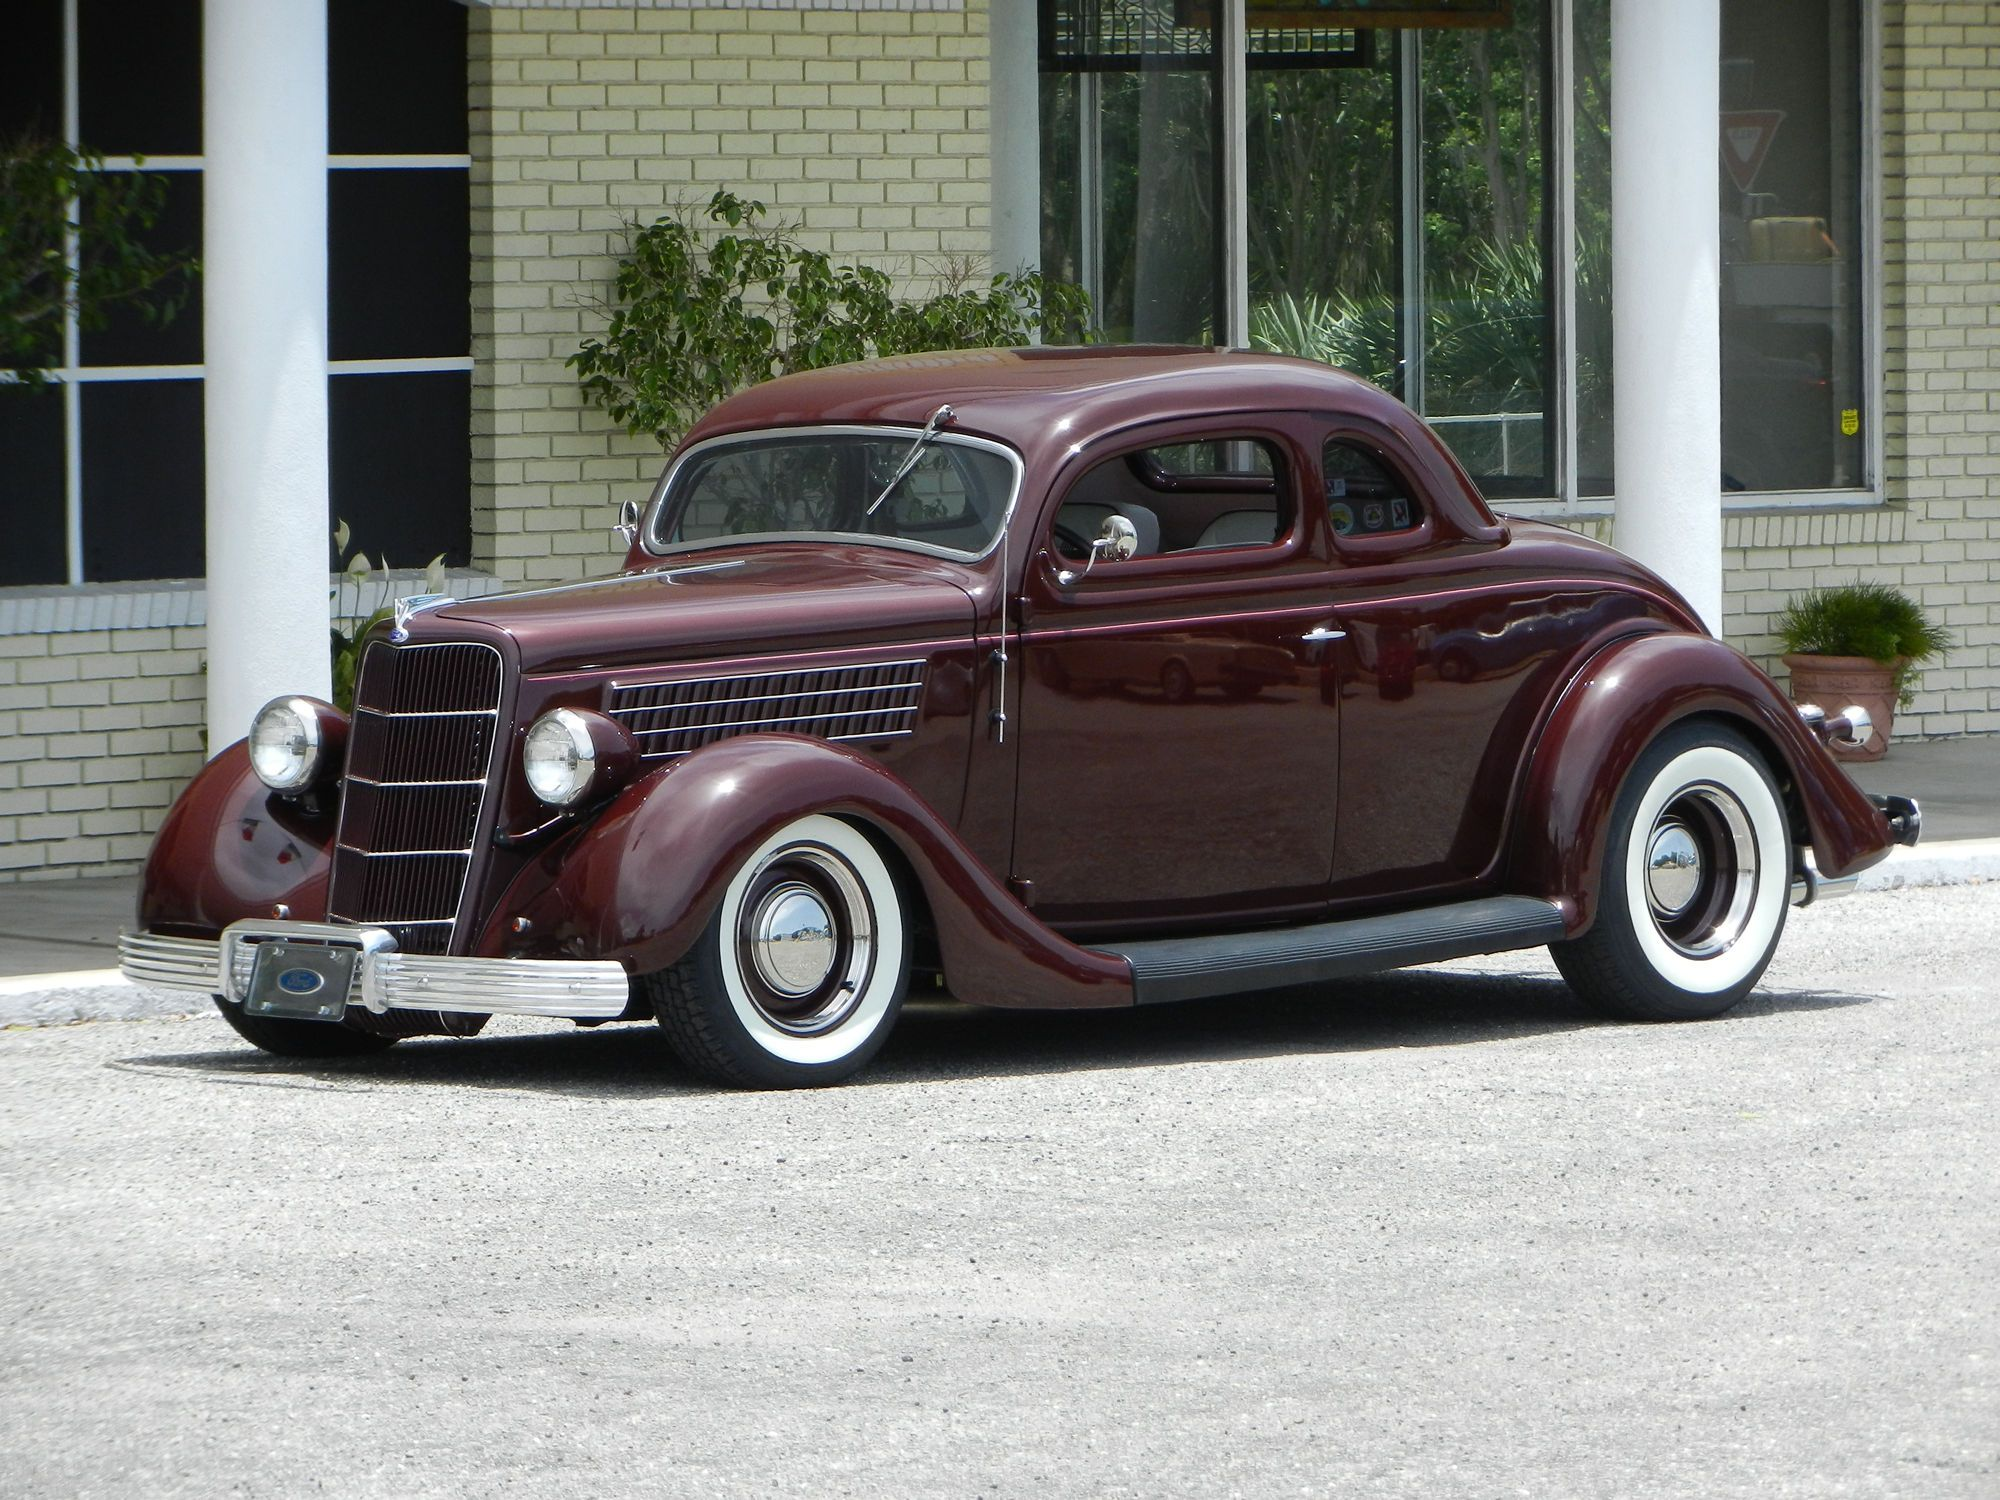 1935 ford 5 windows coupé custom & 1935 ford 5 windows coupé custom | Coupes | Pinterest | Ford Cars ... markmcfarlin.com